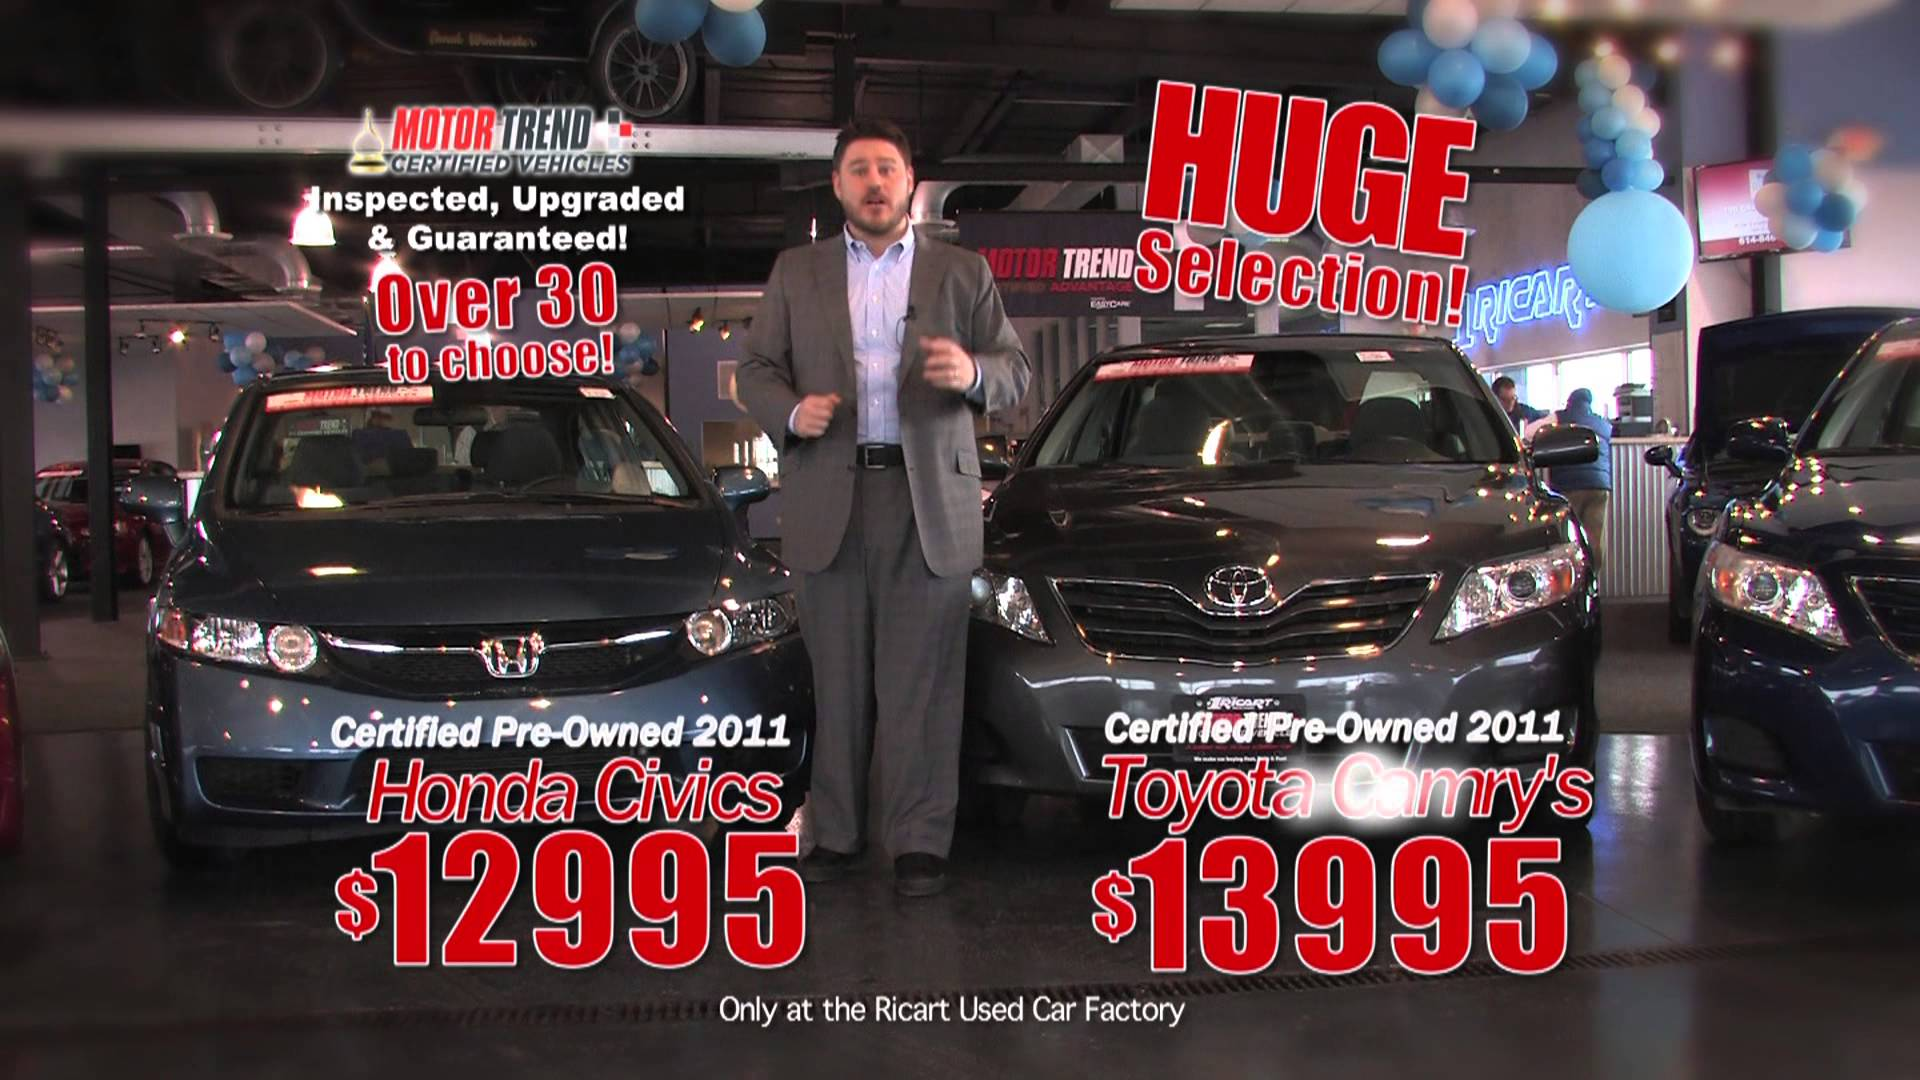 Ricart Used Car Factory Awesome Ricart Used Cars In Columbus Ohio Youtube